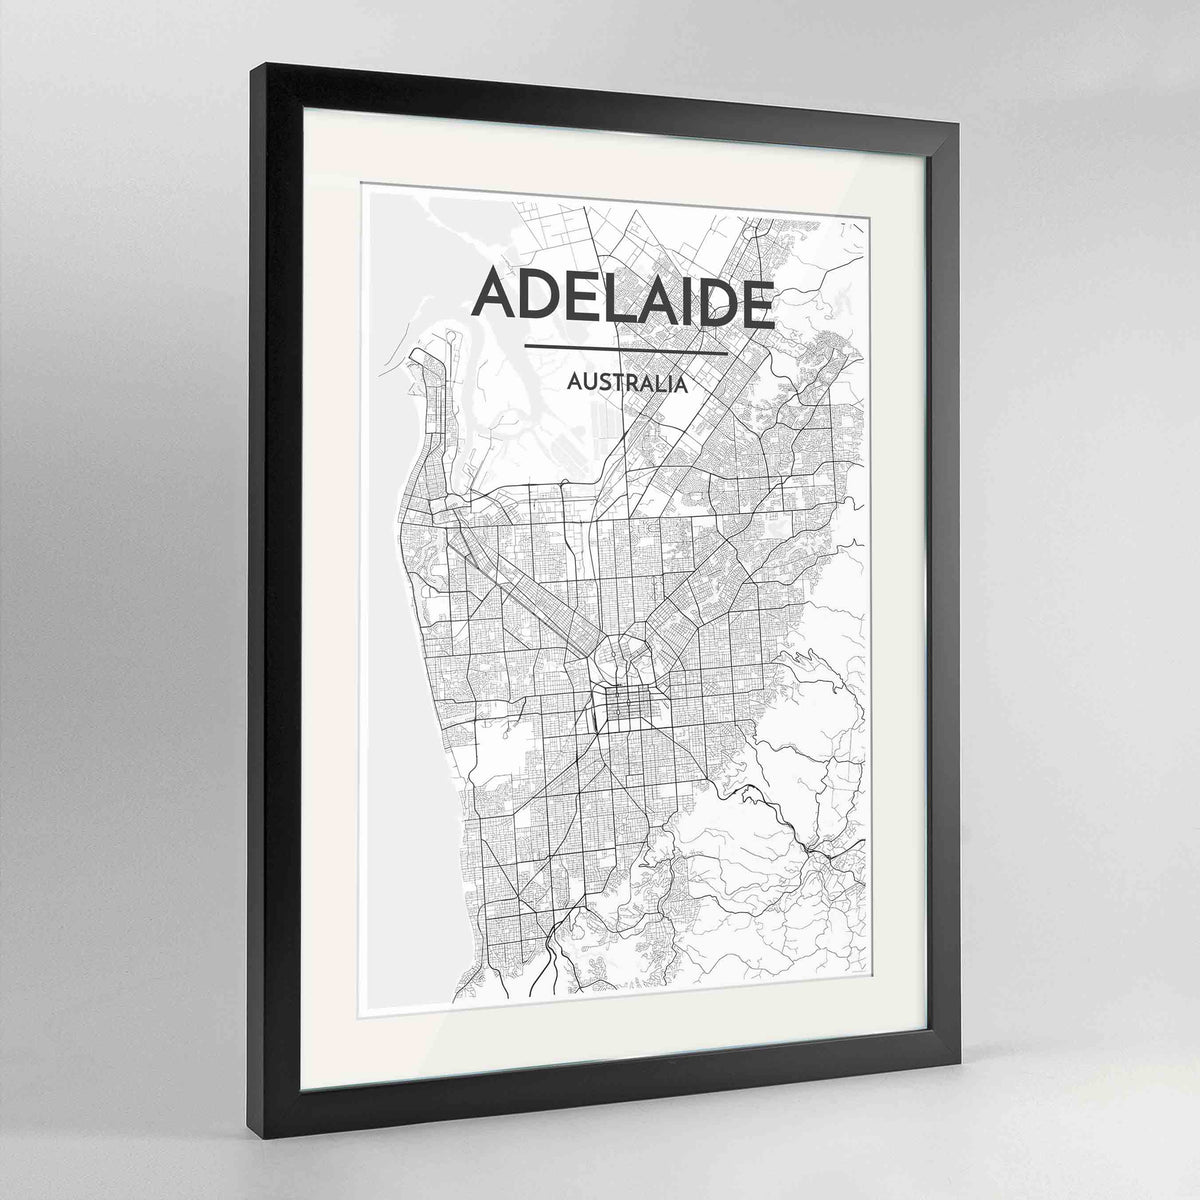 "Framed Adelaide Map Art Print 24x36"" Contemporary Black frame Point Two Design Group"